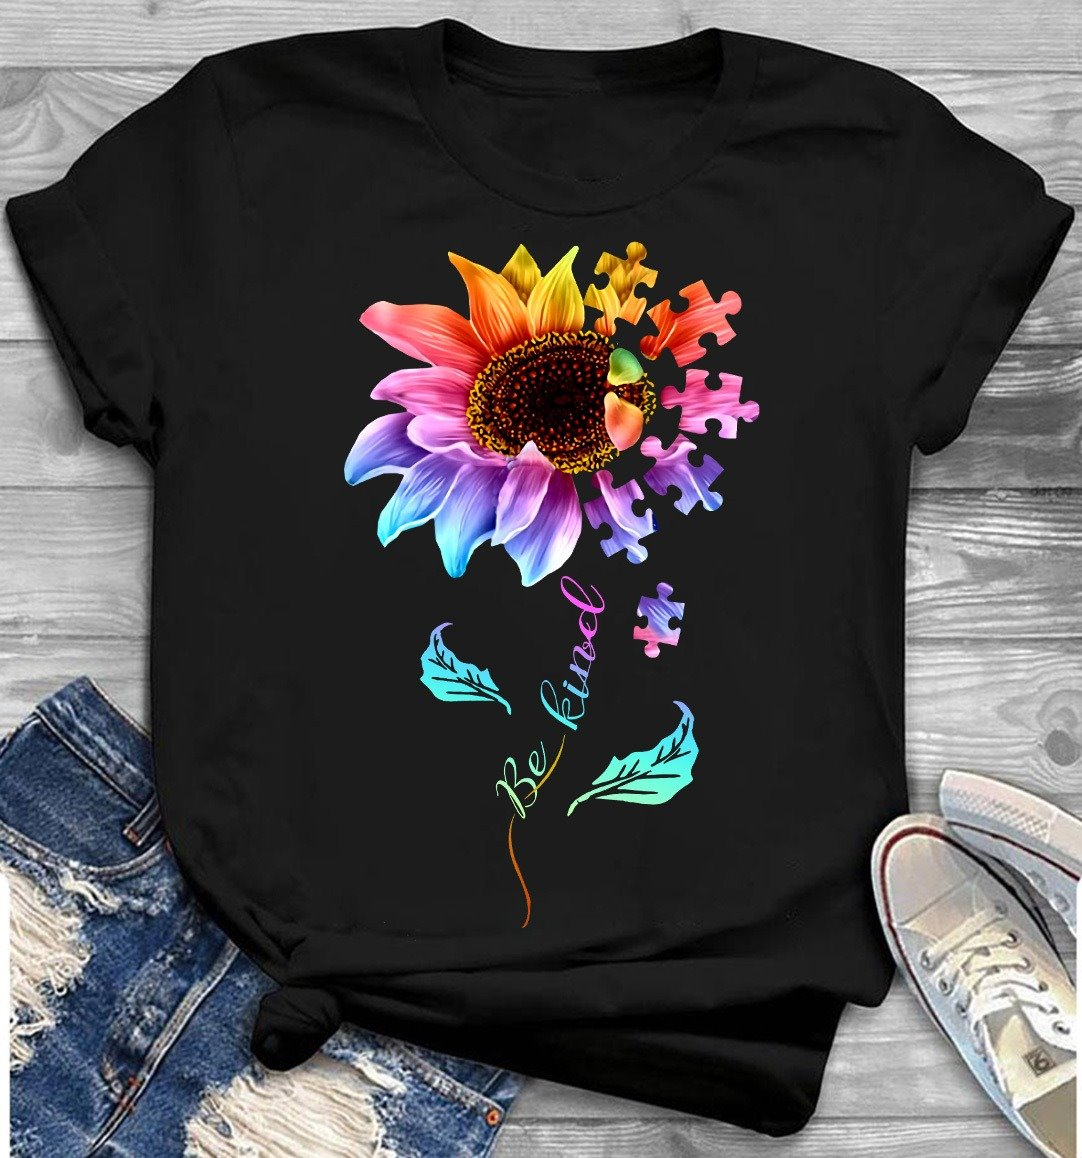 Sunflower Autism Shirt Be Kind